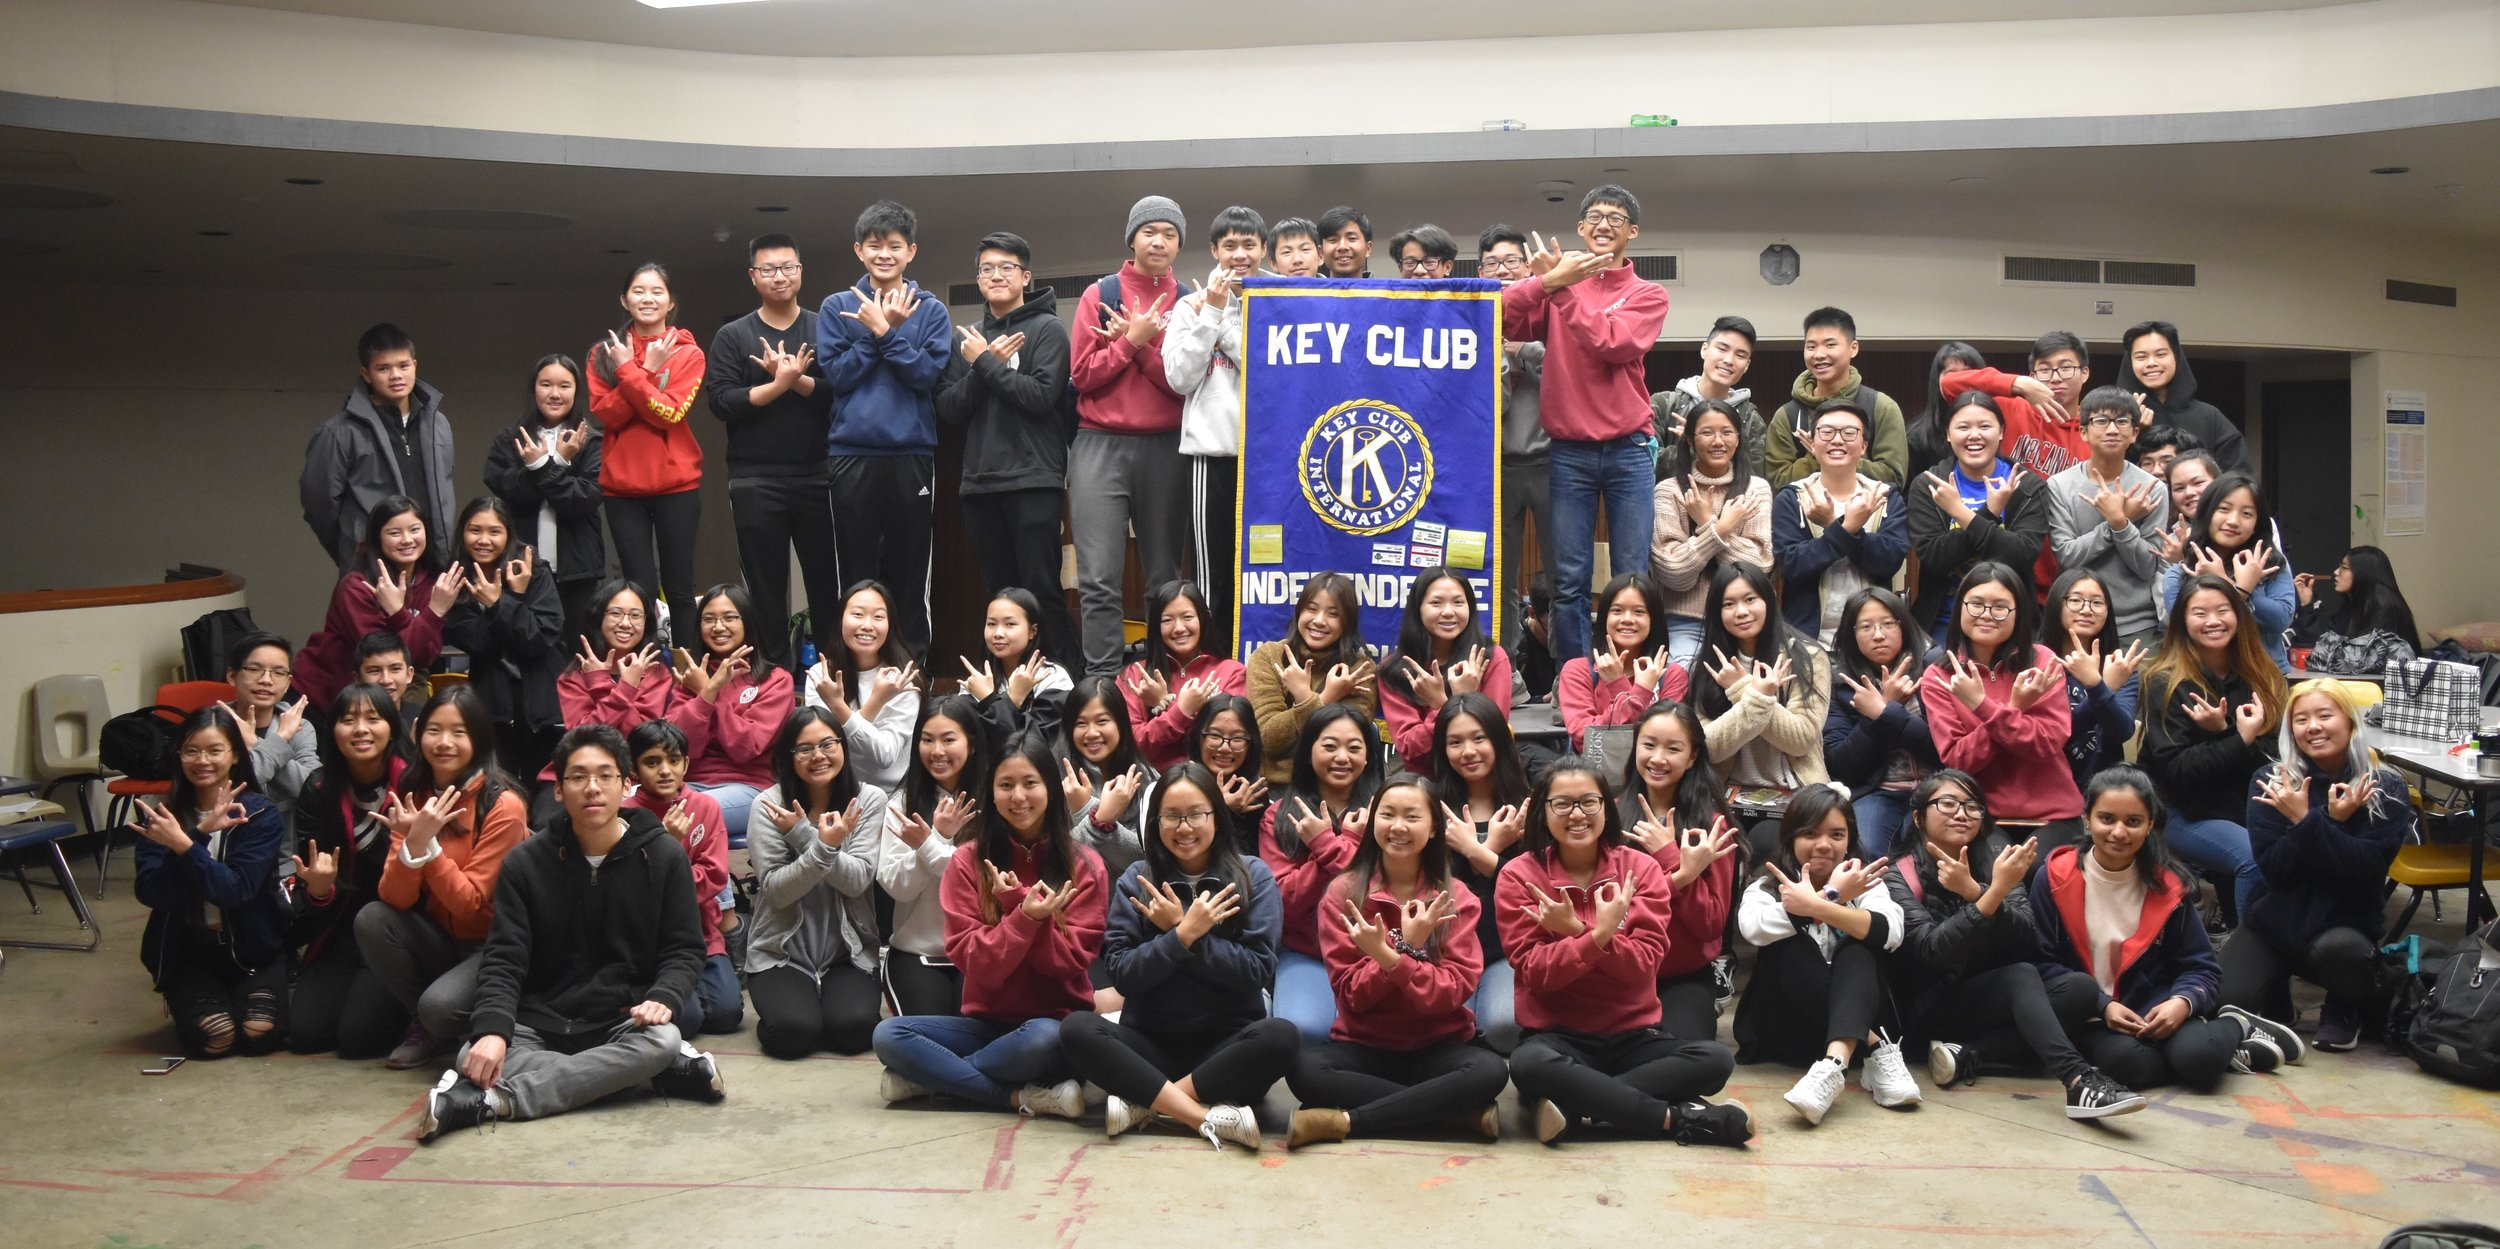 """Caring.. our way of life - """"Contrary to popular belief we are not a club that makes keys. Key Club is the oldest and largest service program for high school students. This is the best place to make new friends and help people in need. What makes Key Club so successful is the fact that it is a student-led organization that teaches leadership through helping others. Through the support of the Kiwanis International family, Key Club members build themselves as they build their schools and communities."""""""